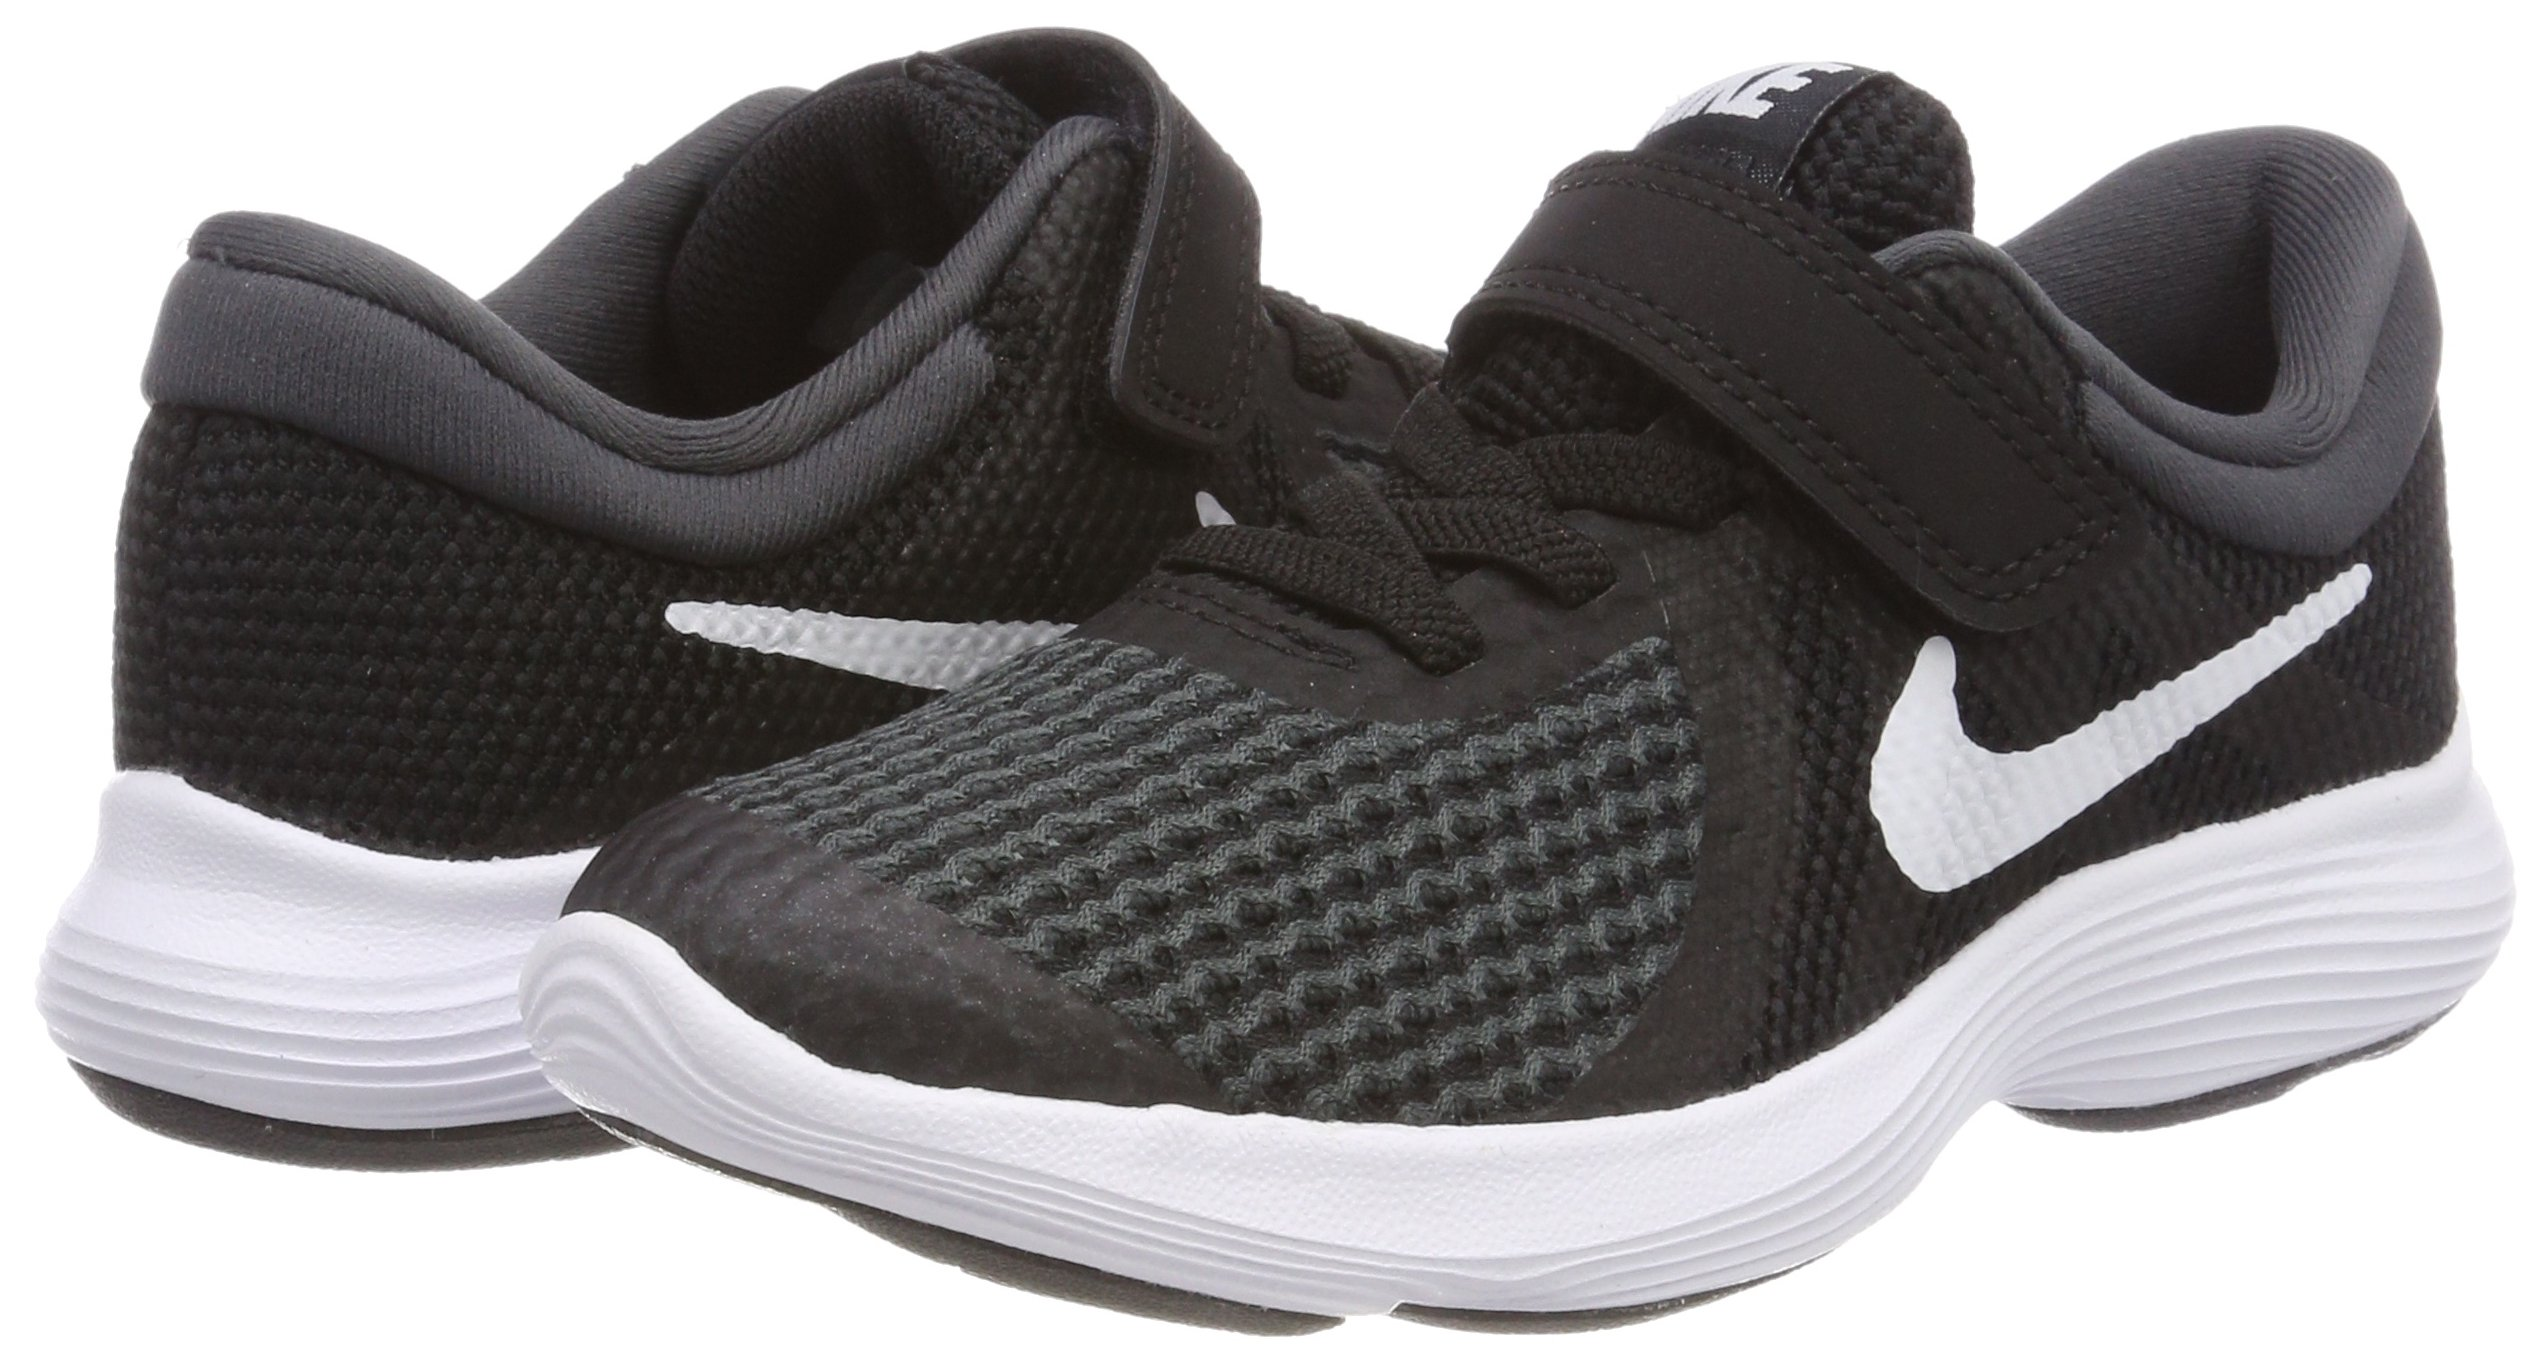 Nike Boys' Revolution 4 (PSV) Running Shoe, Black/White-Anthracite, 10.5C Youth US Little Kid by Nike (Image #5)